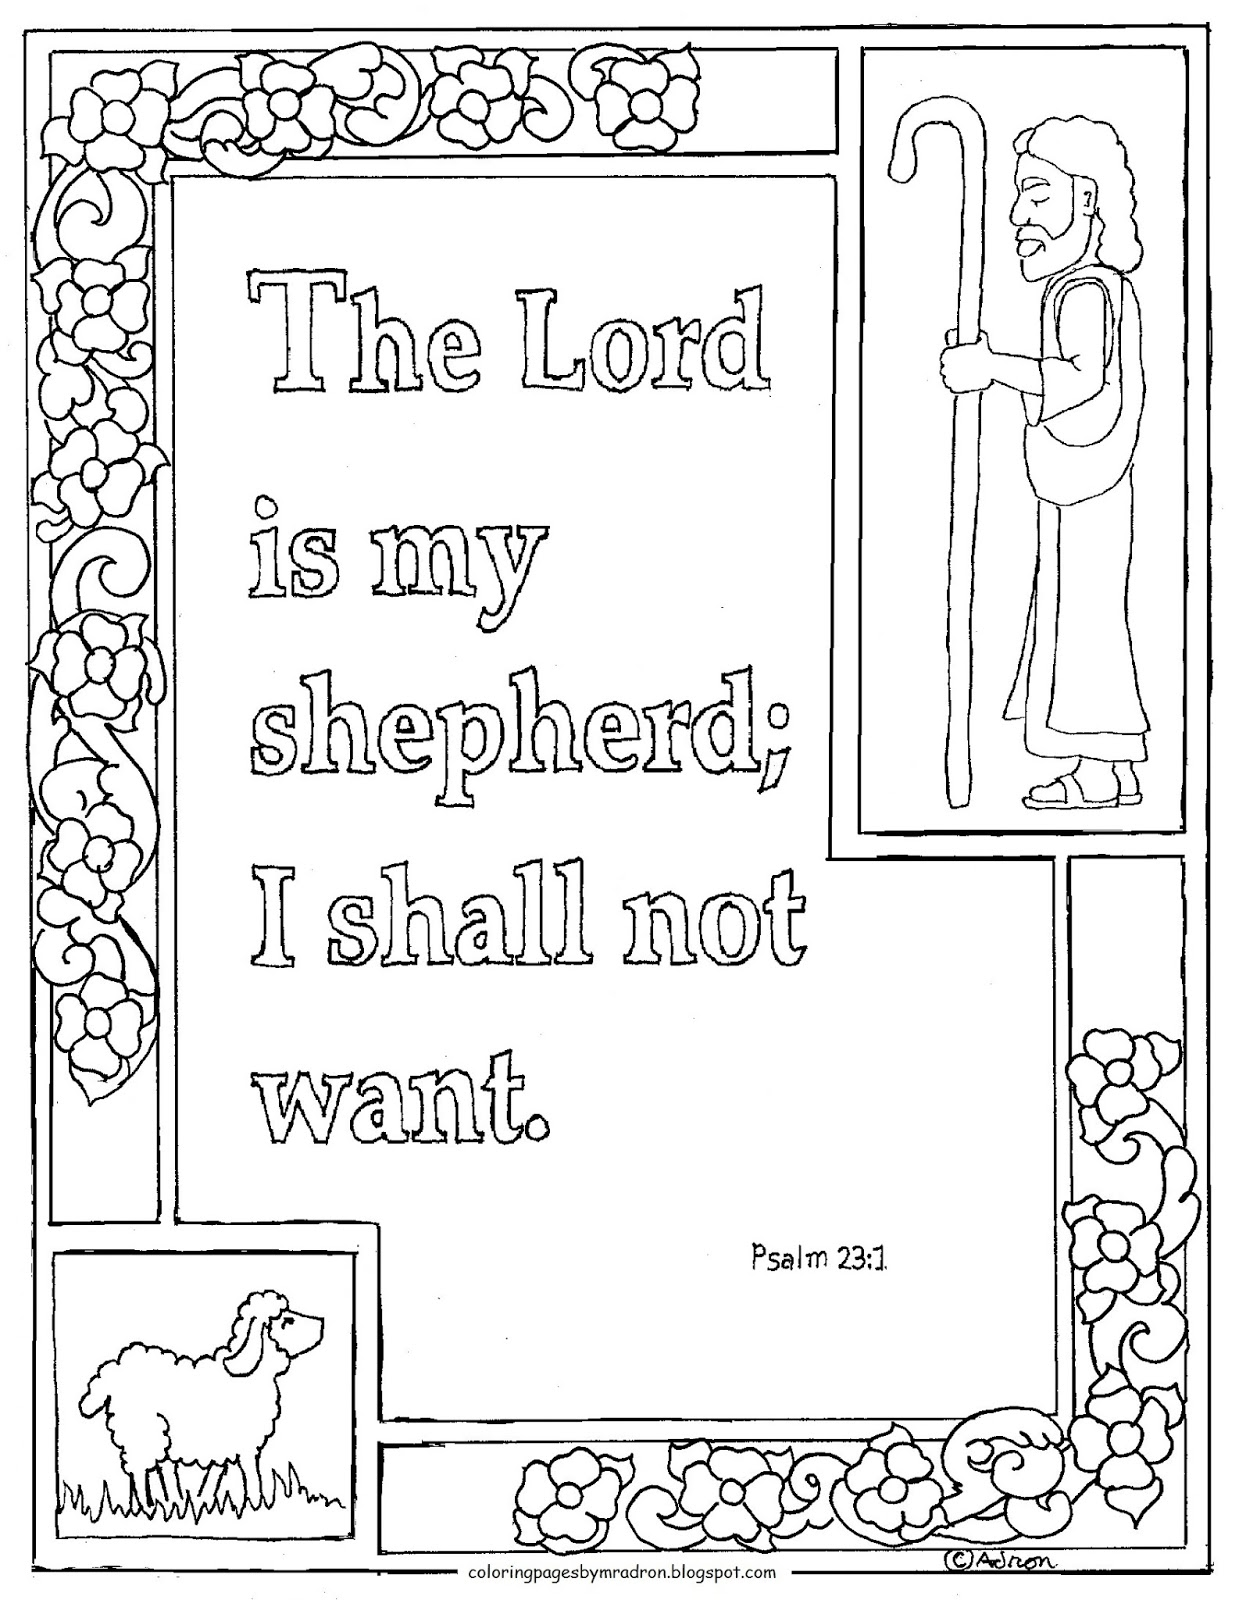 Coloring Pages For Kids By Mr Adron Printable Psalm 23 1 The Lord Is My Shepherd Coloring Page